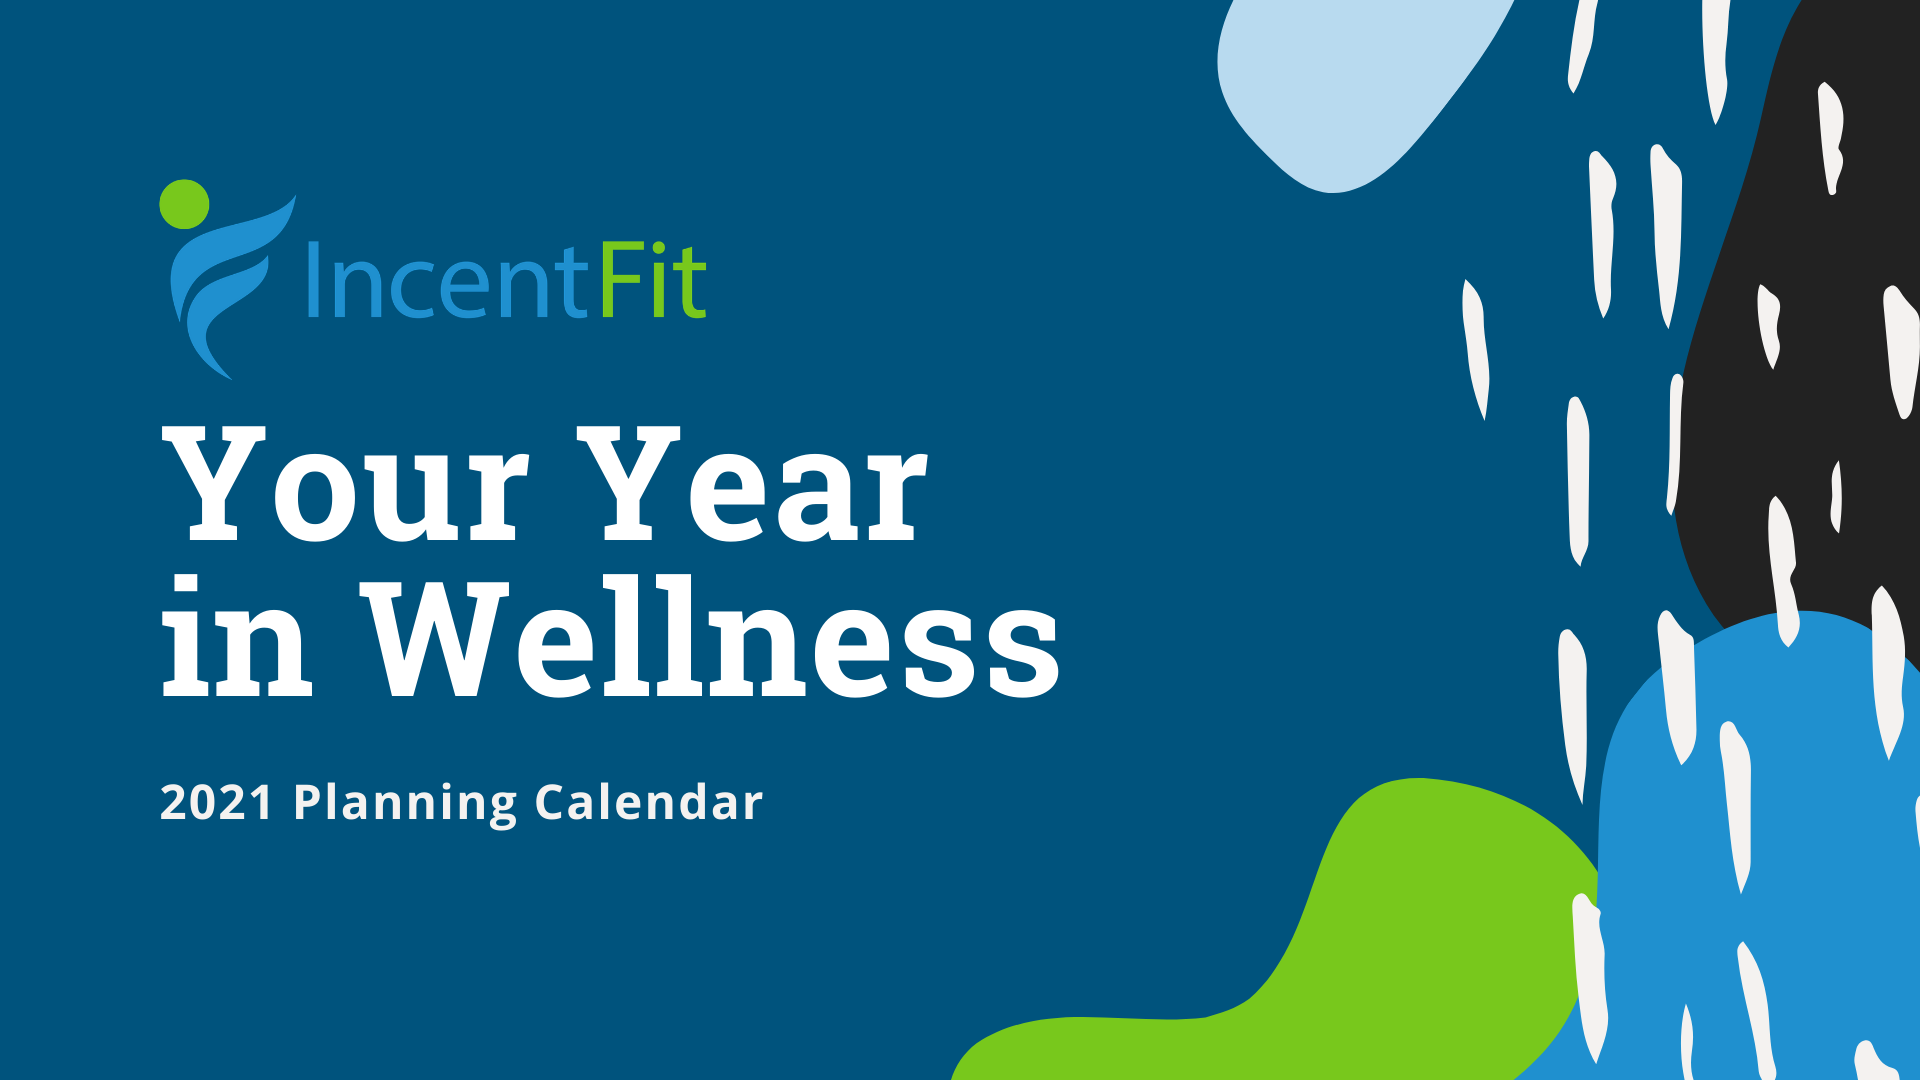 Your Year In Wellness 2021 Planning Calendar from IncentFit